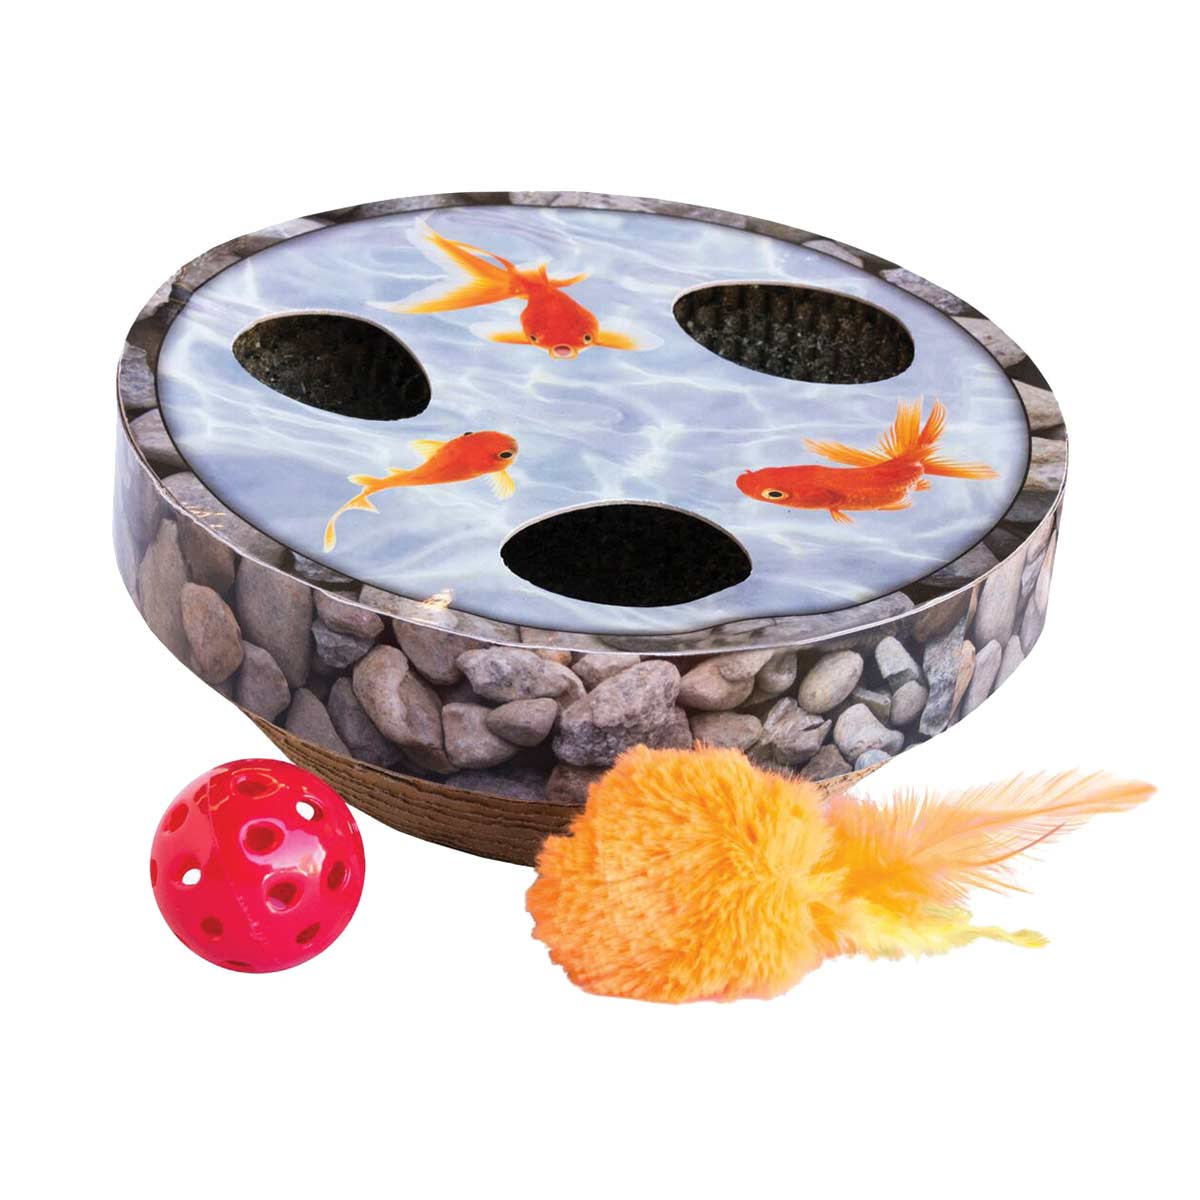 Outward Hound Hide & Seek Wobble Pond Cat Toy at Ryan's Pet Supplies